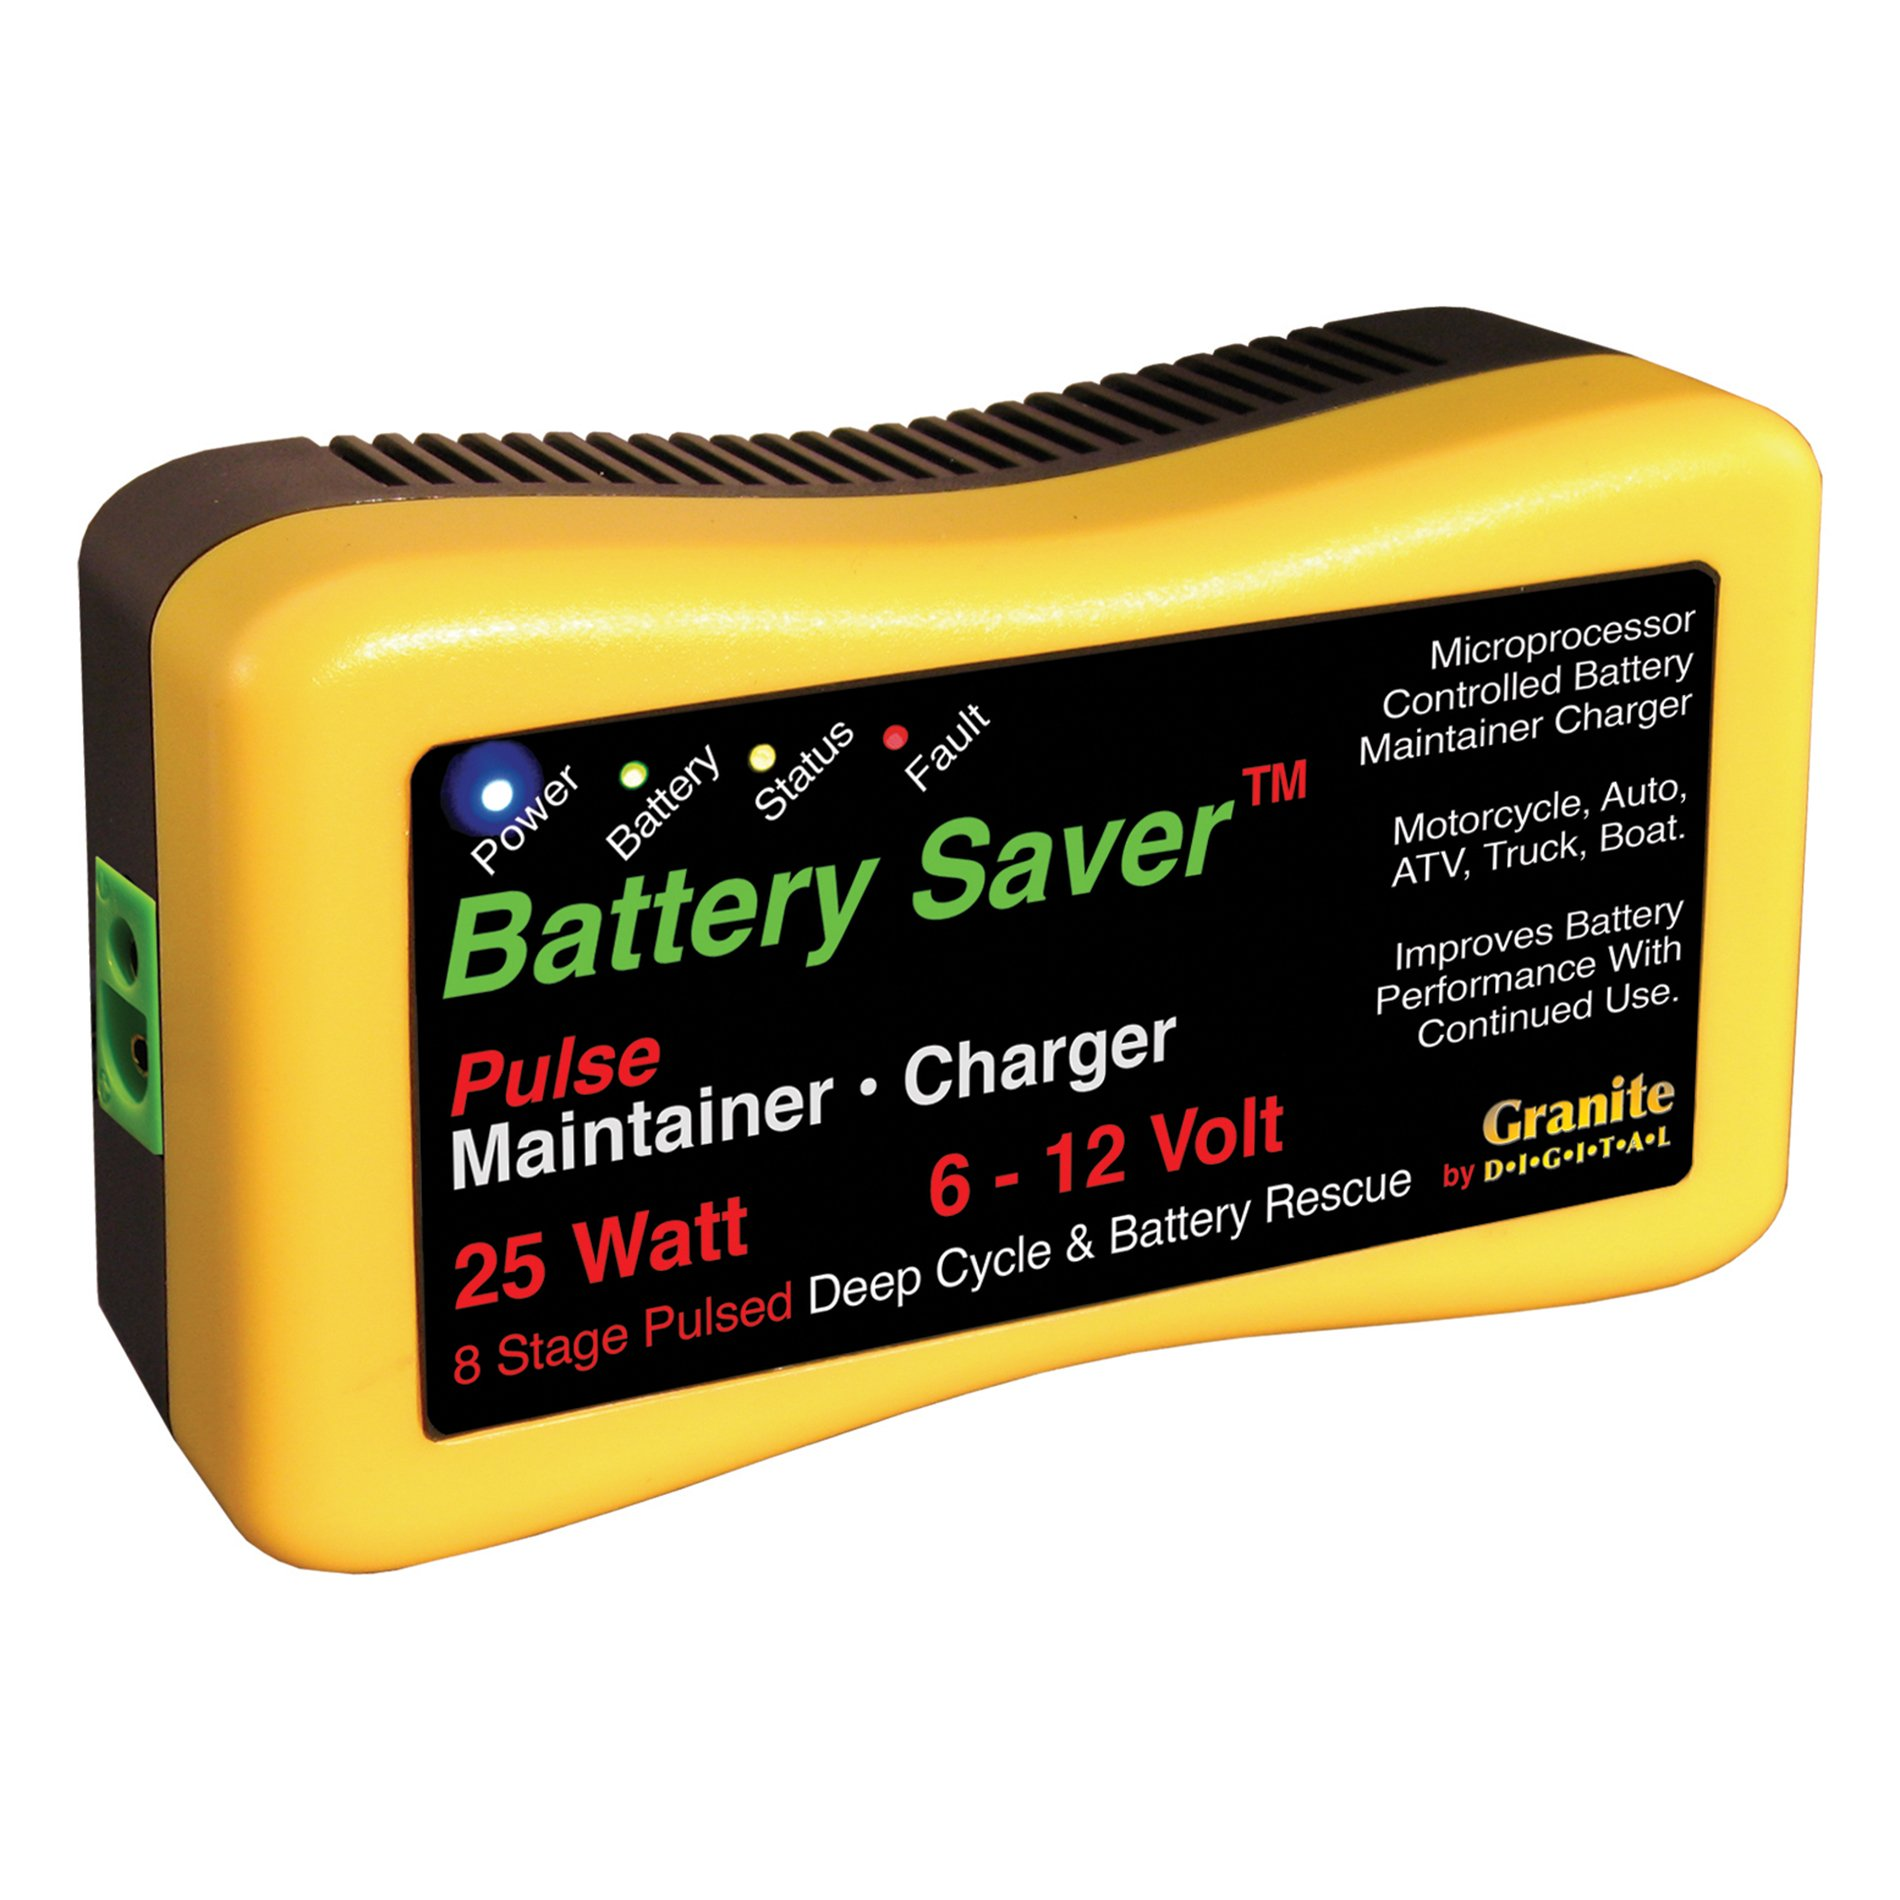 Save A Battery 3015 12 Volt/25 Watt Battery Saver/Maintainer and Battery Rescue by Battery Saver (Image #4)